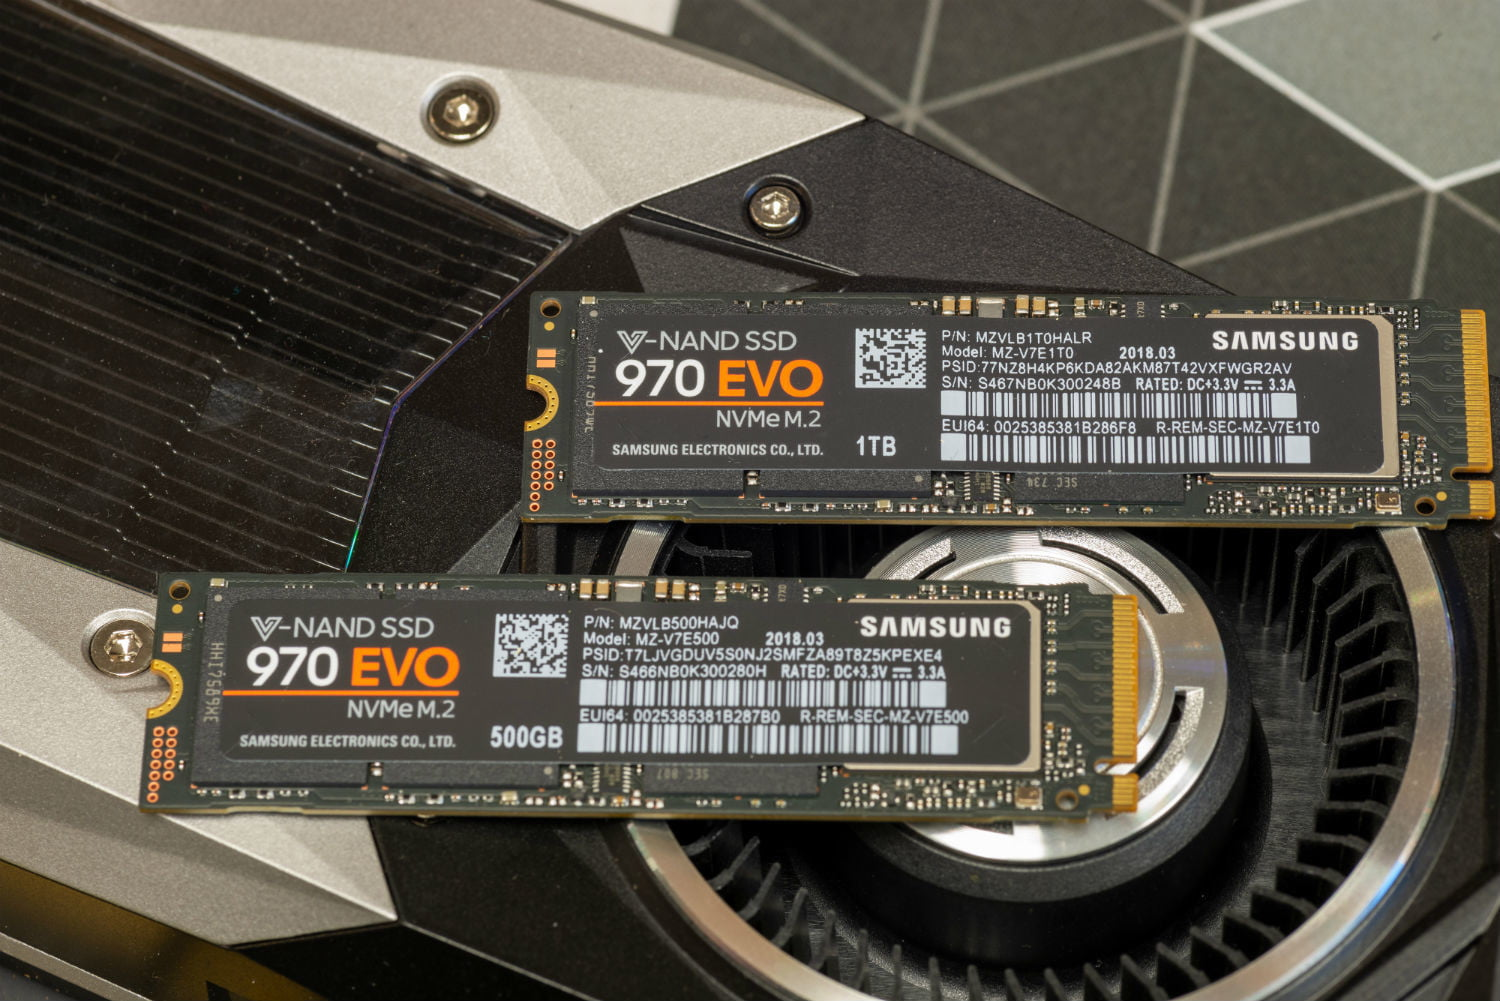 Samsung's 970 EVO SSDs Offer Stellar Performance With a